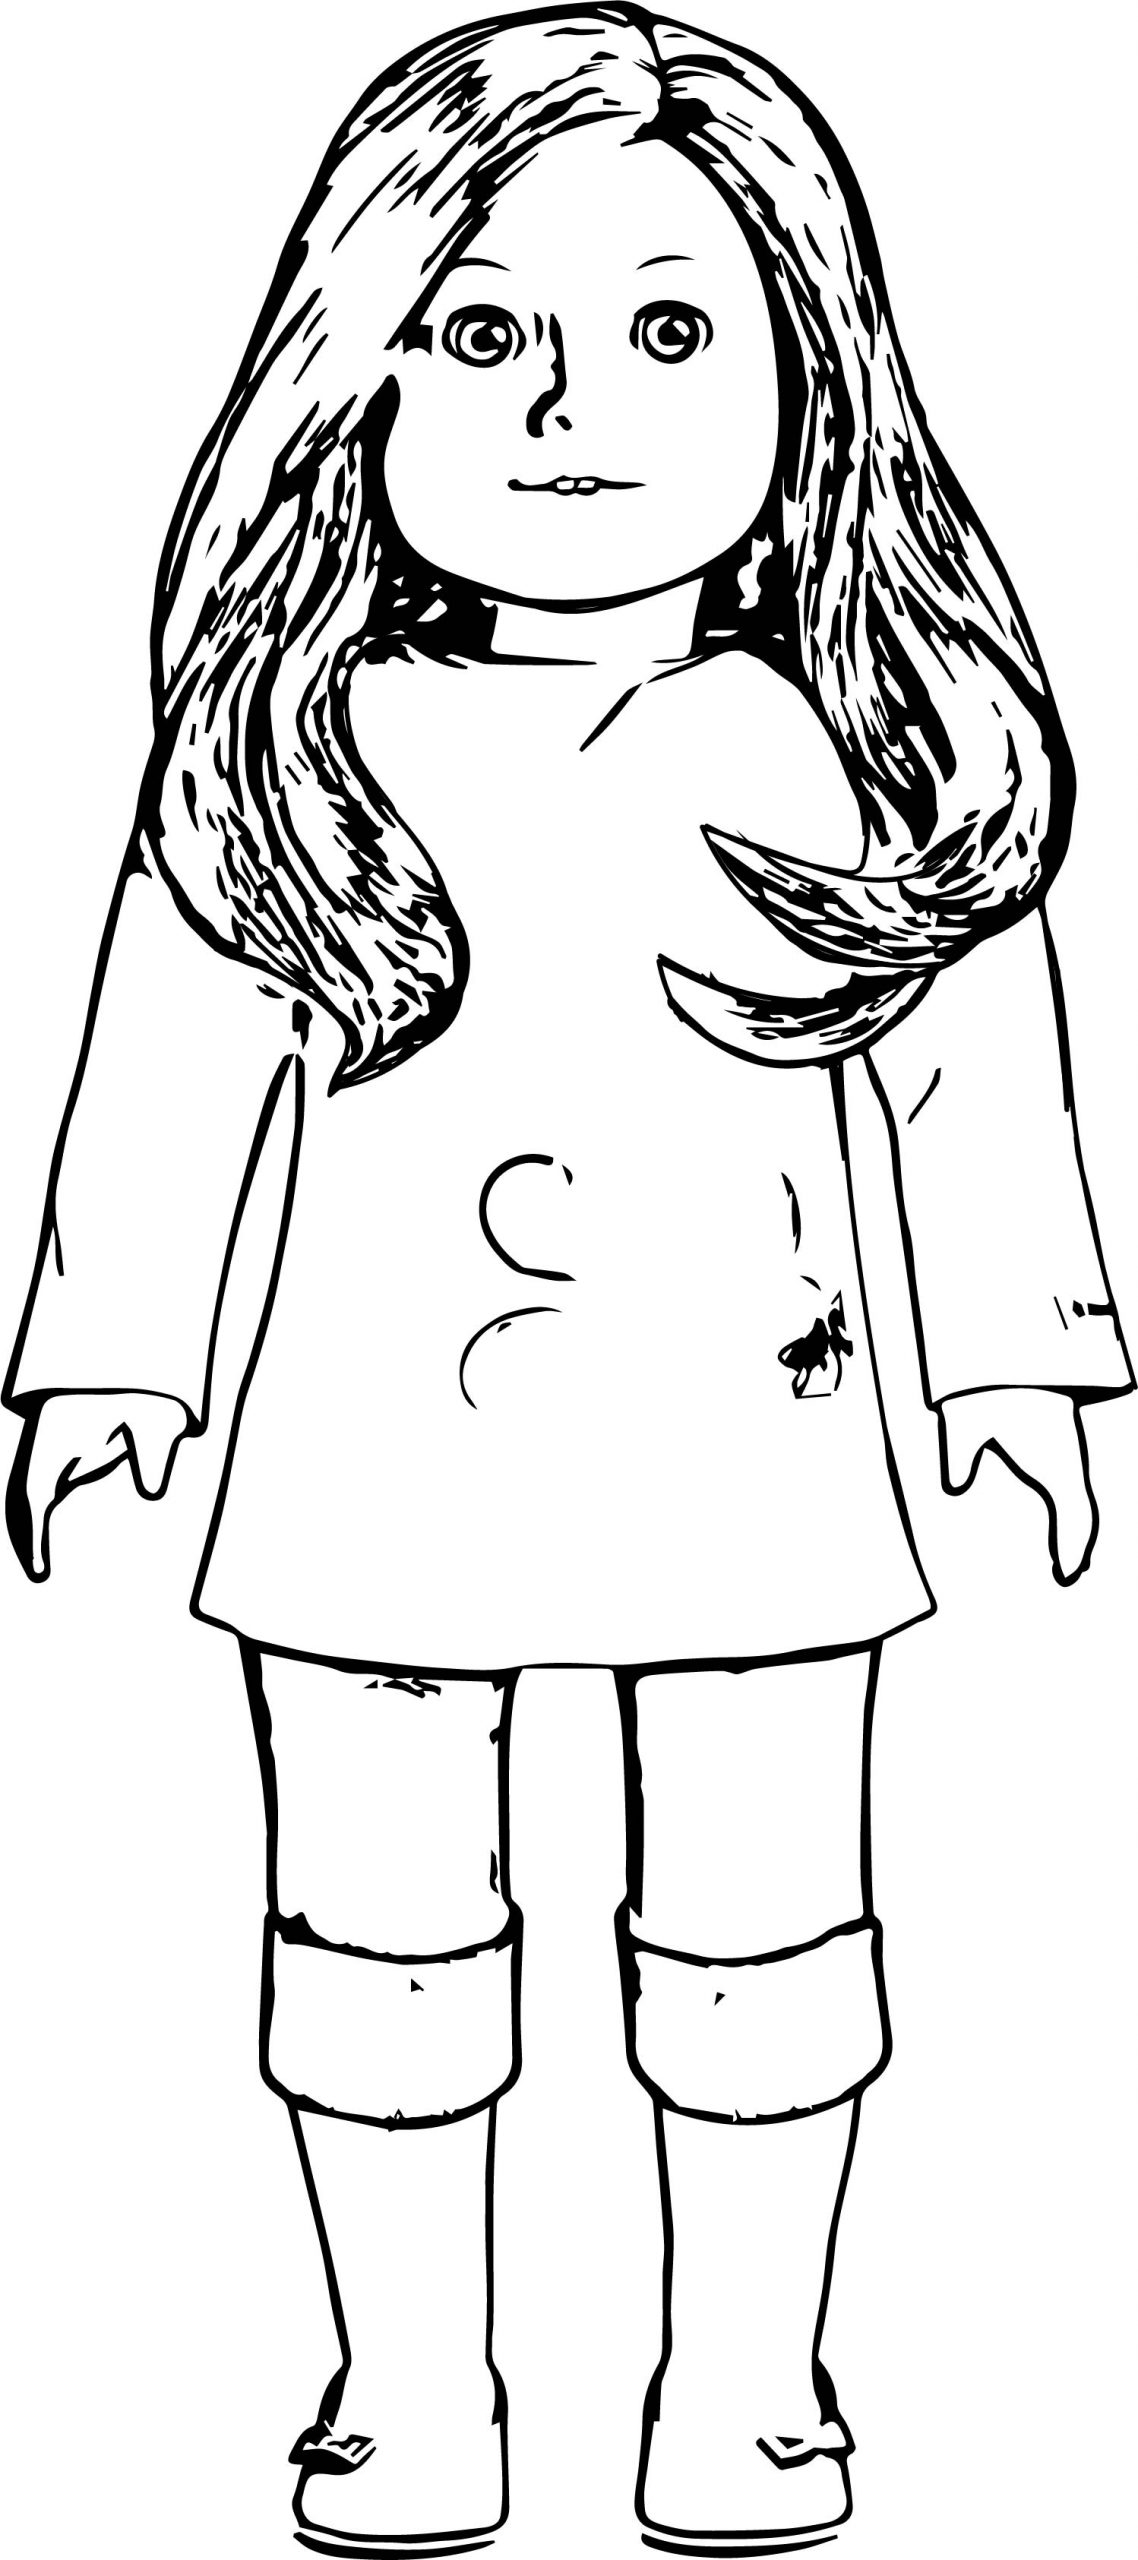 american girl doll coloring pages to print american girl coloring pages best coloring pages for kids american coloring girl to doll pages print